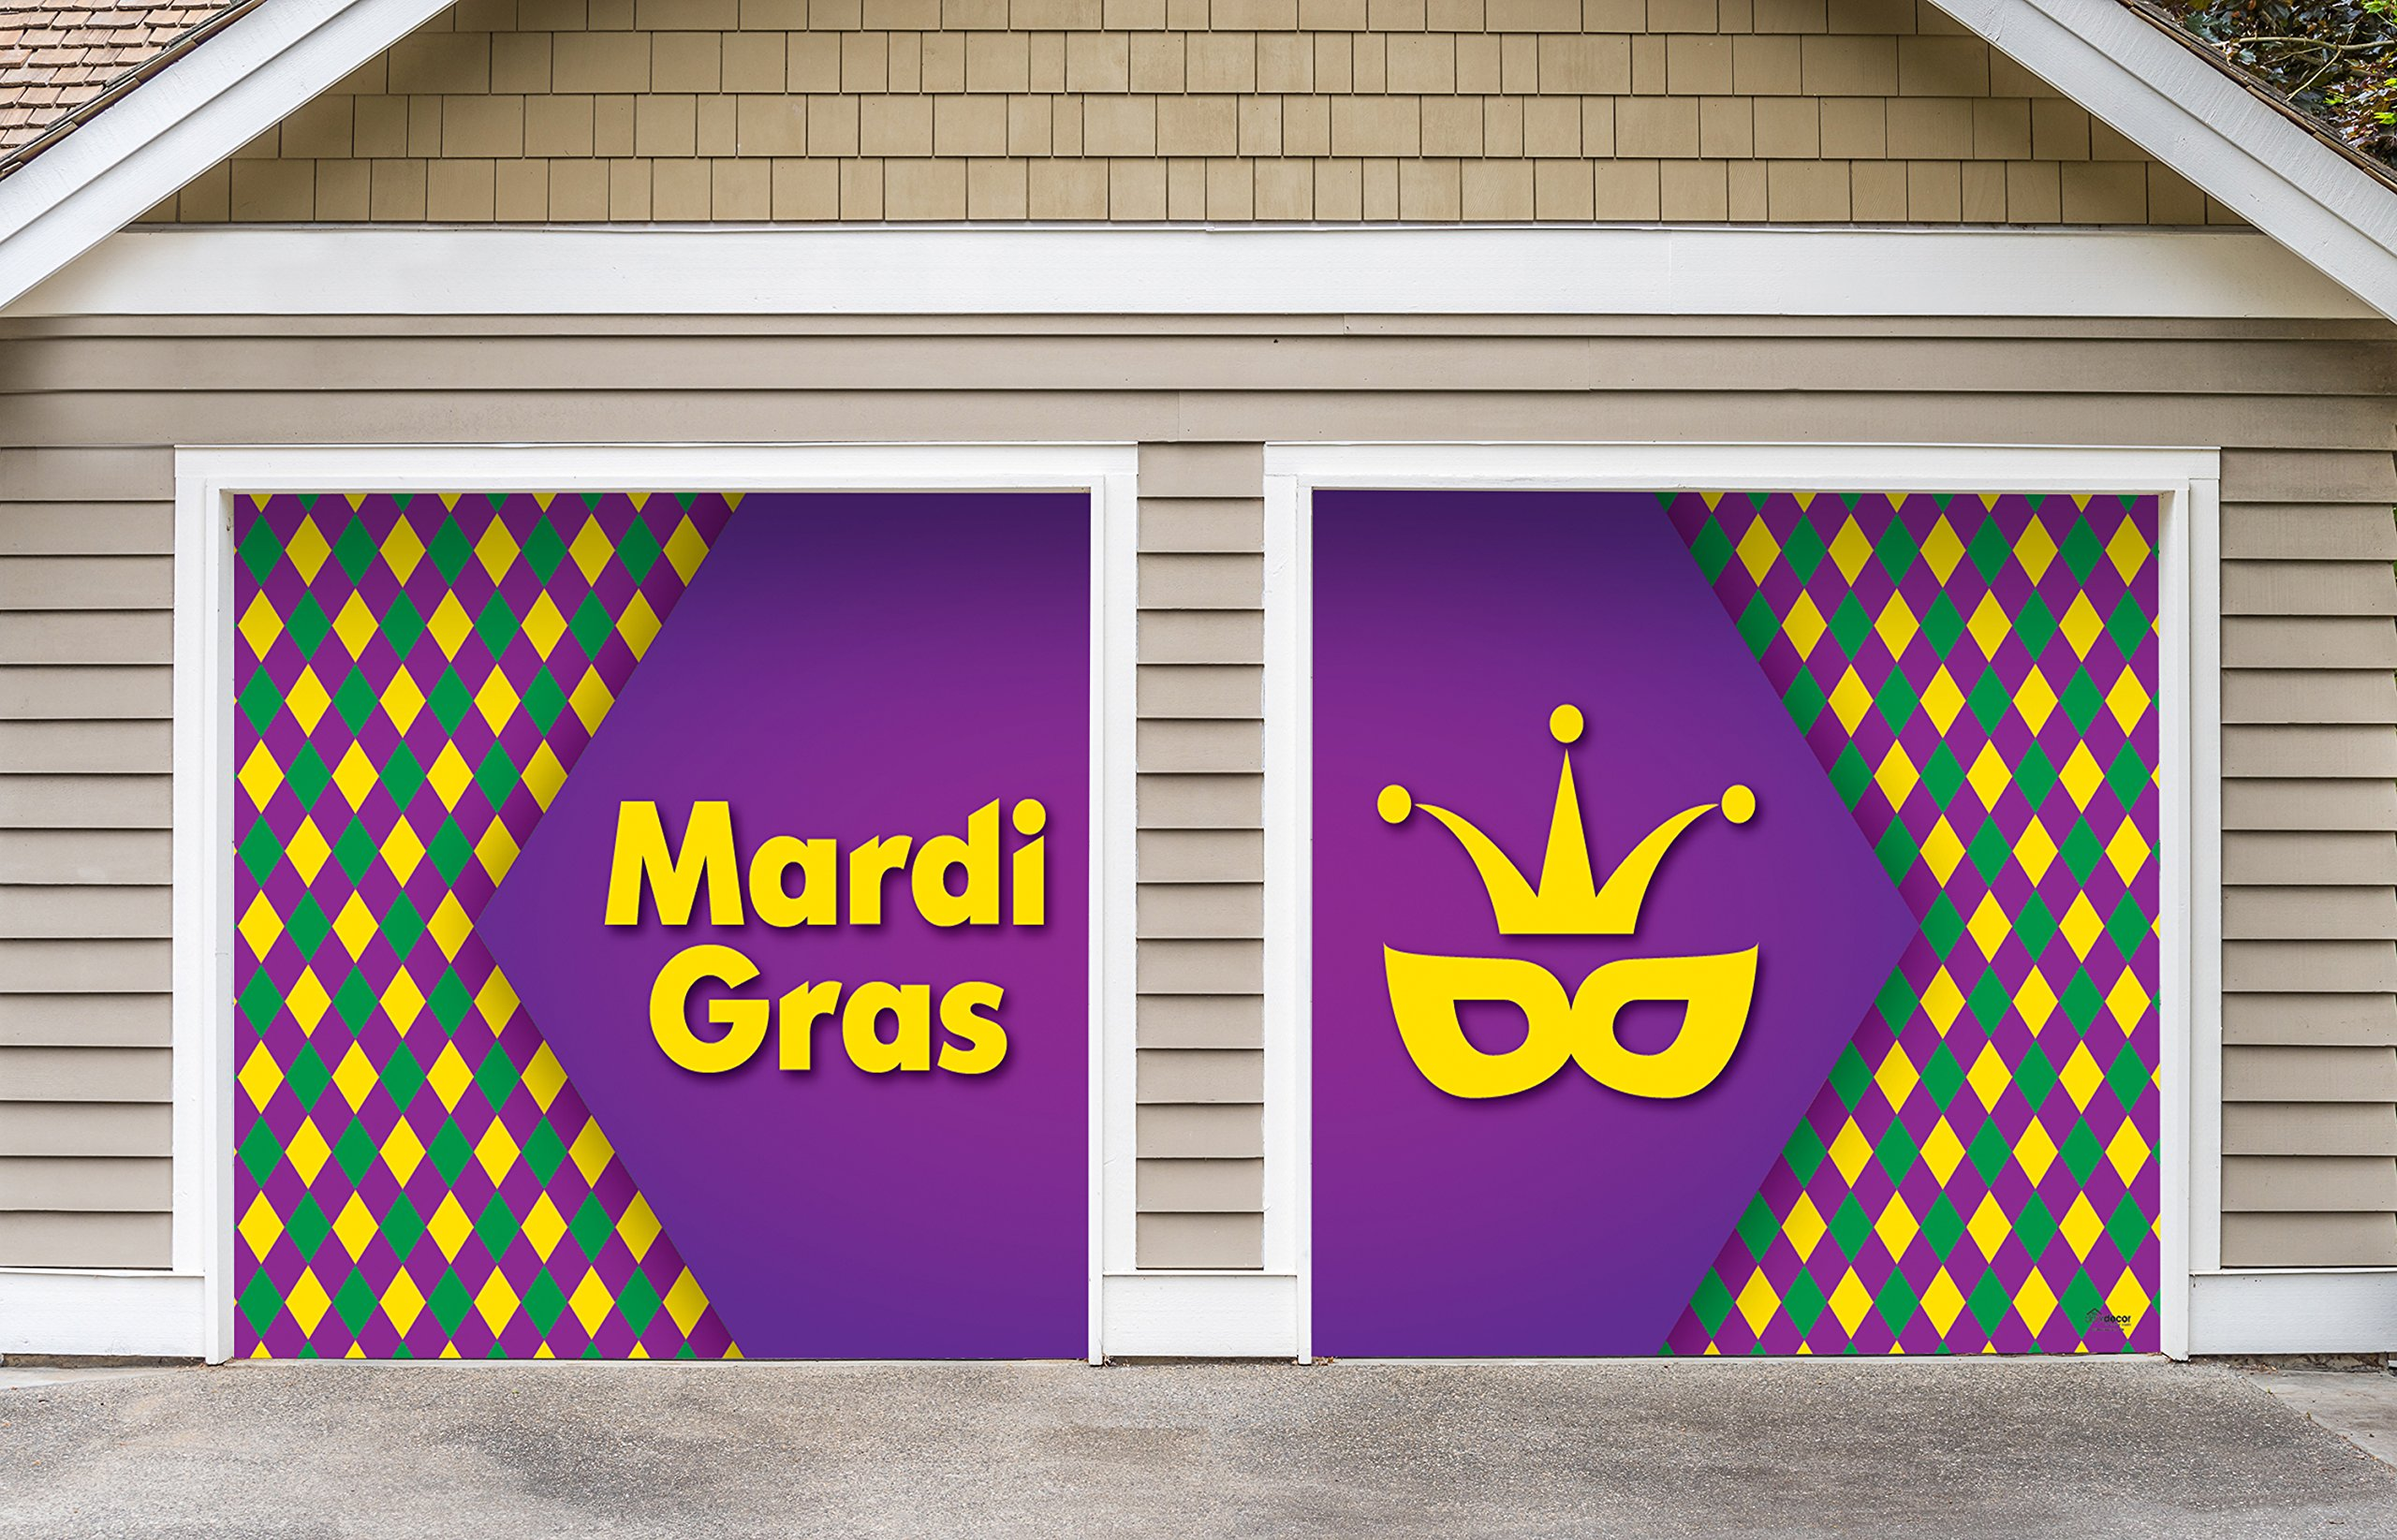 Outdoor Mardi Gras Decorations 2 Car Split Garage Door Banner Cover Mural - Mardi Gras Diamonds, Two 7'x 8' Graphic Kits - ''The Original Mardi Gras Supplies Garage Door Banner Decor''